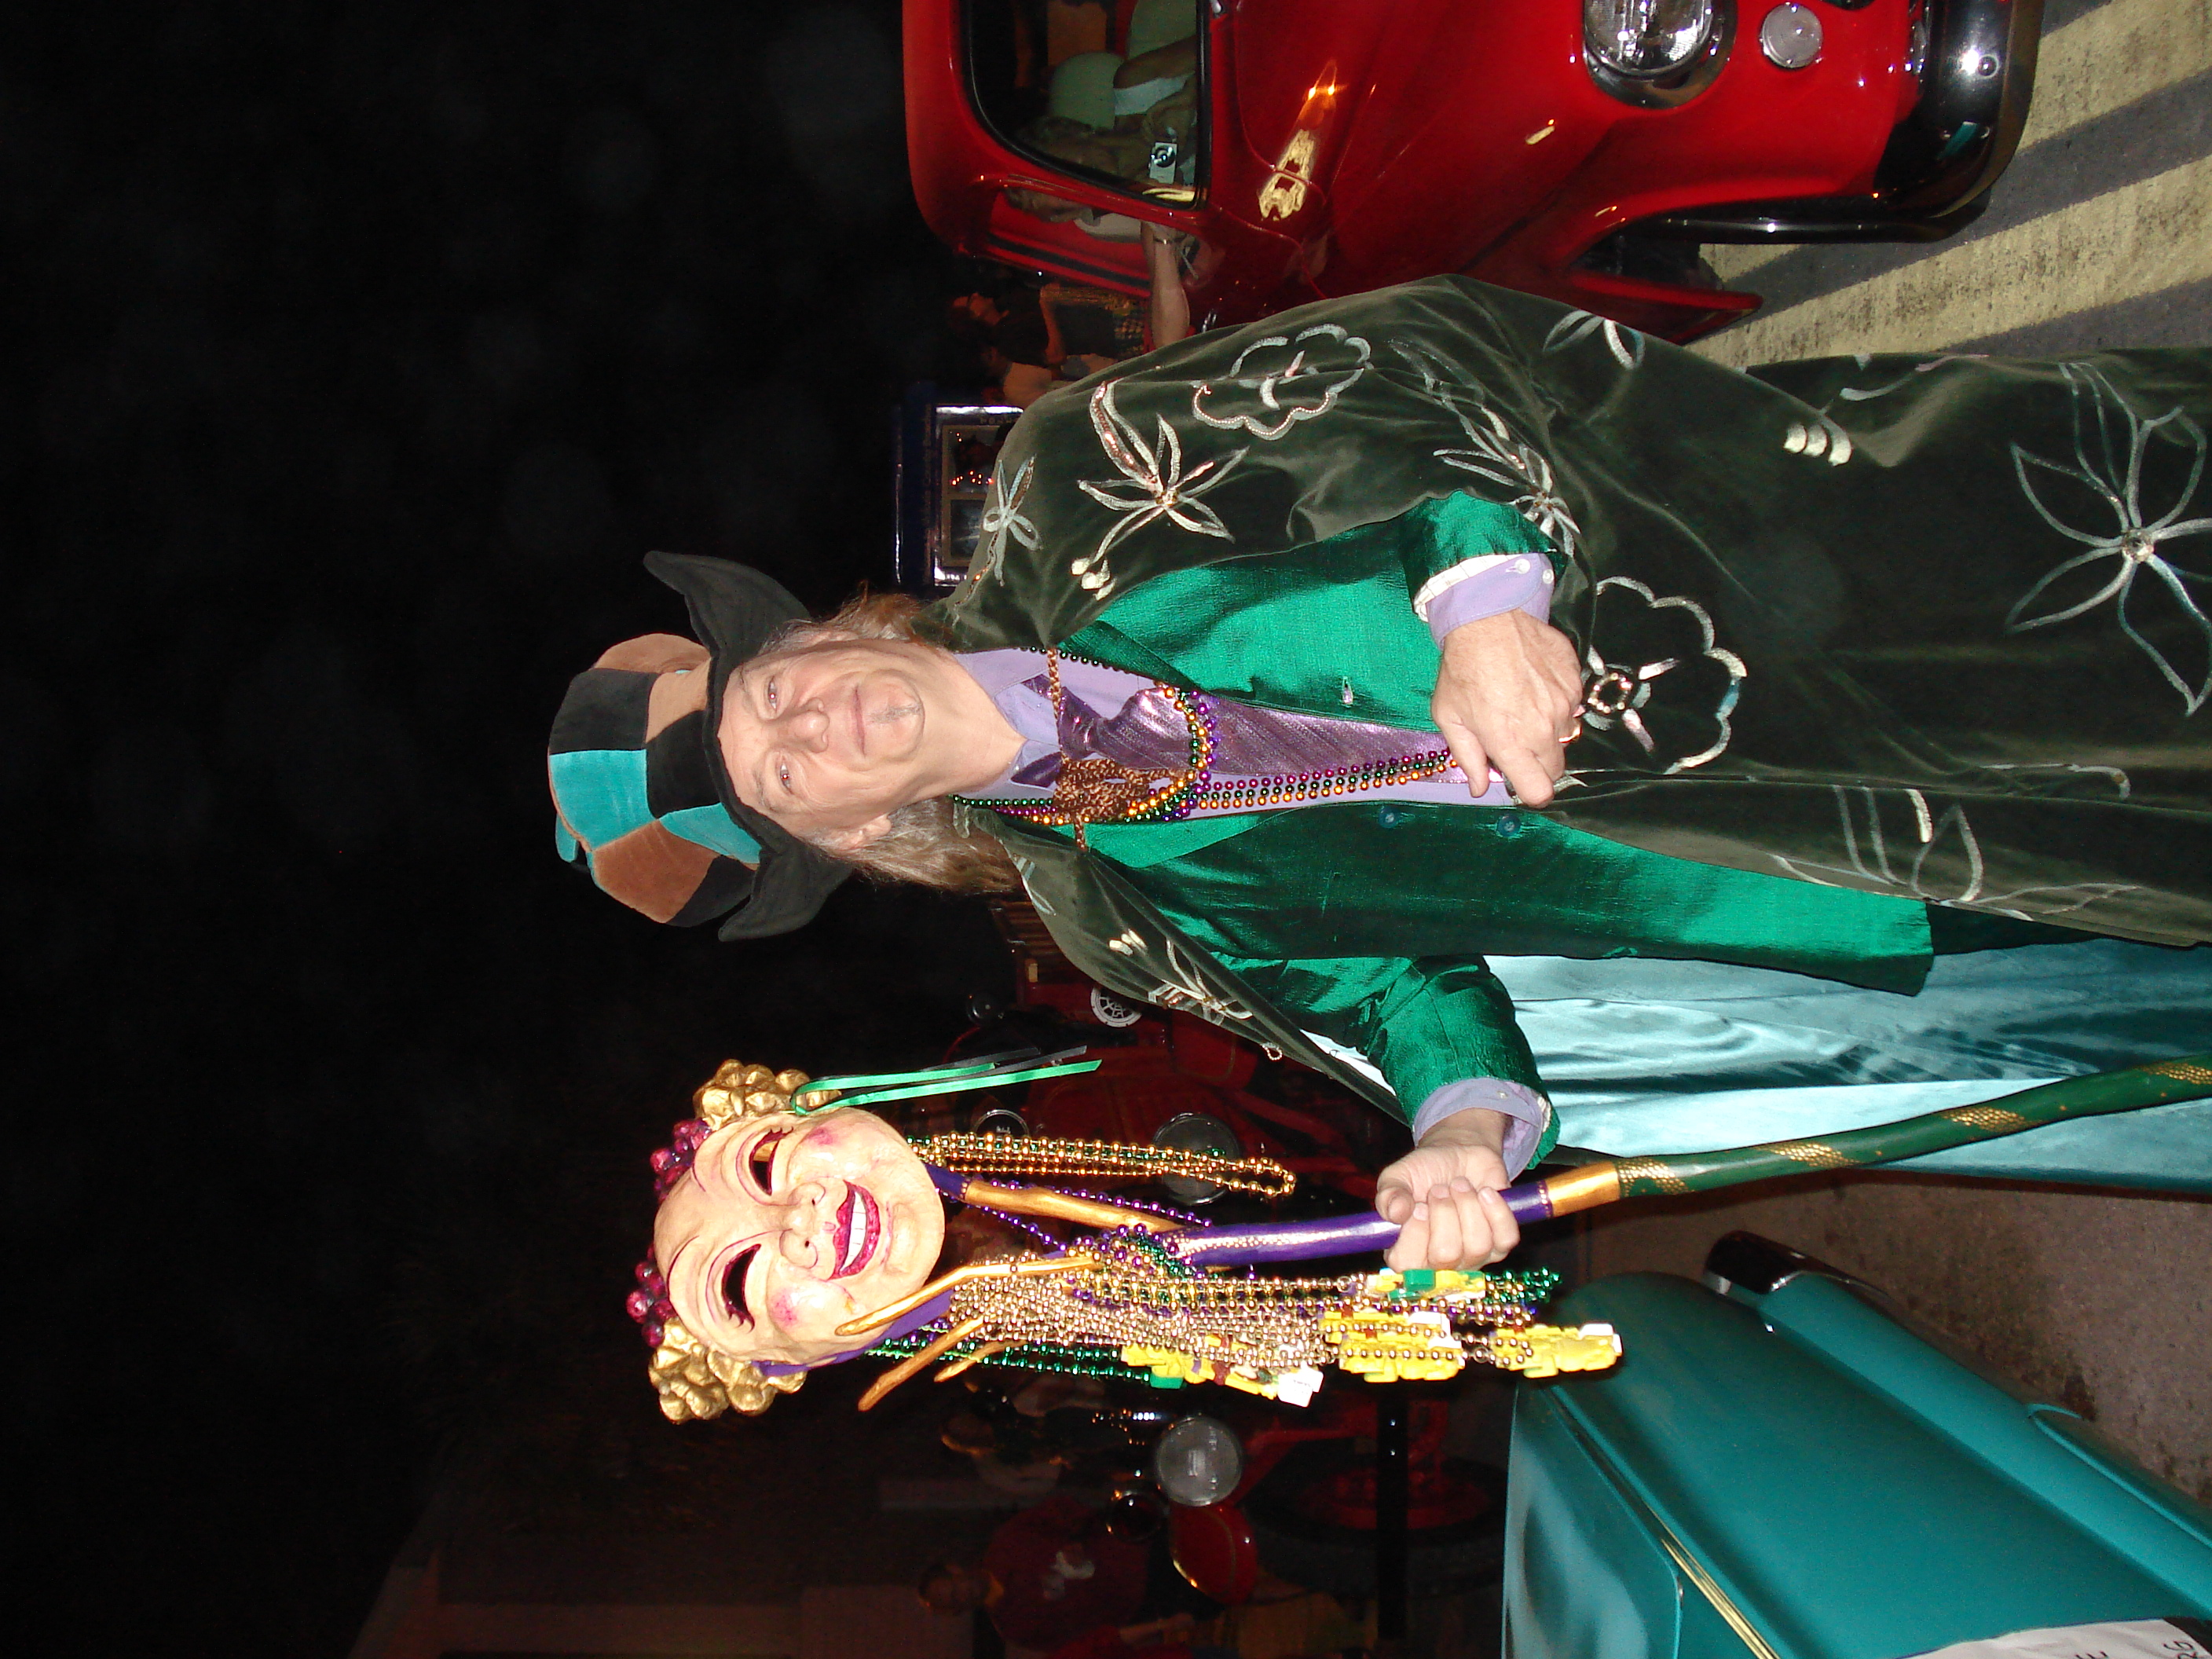 John - ready to lead the first Mardi Gras Parade (with Adele - not in this photo) in 2008. Wonderful person, great artist and musician. He will be missed.